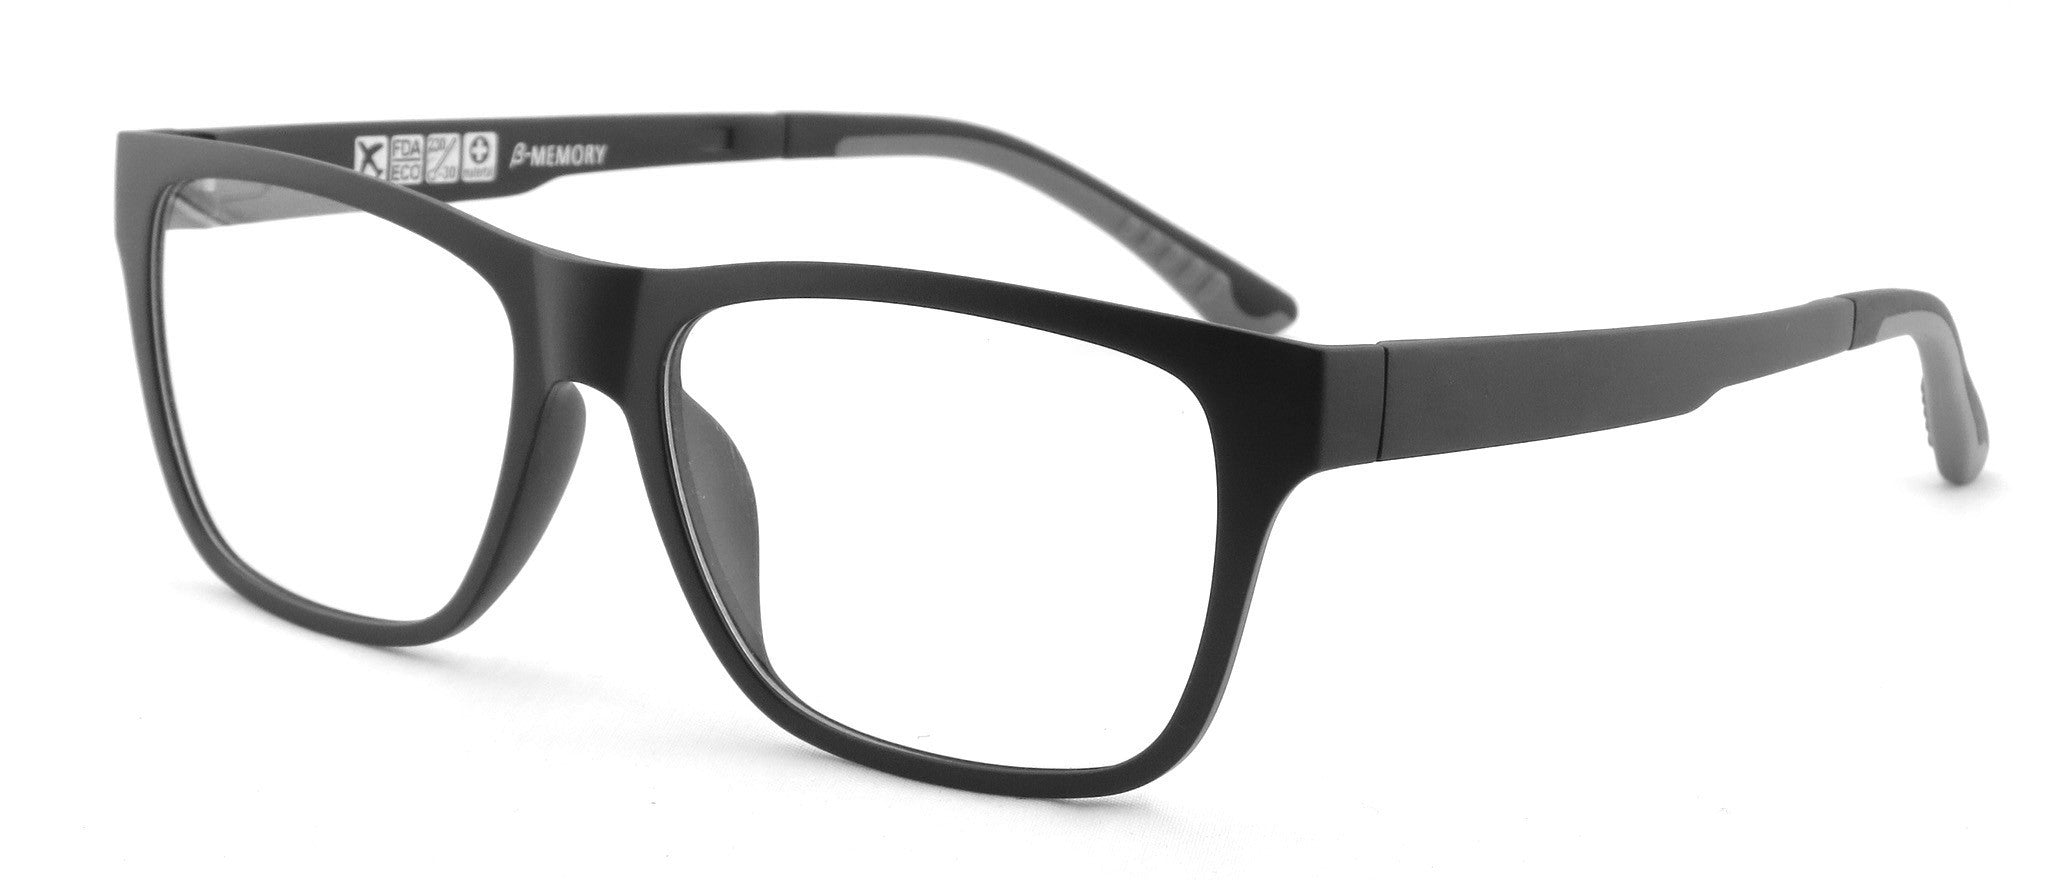 Glasses Frame Ultem : ARRON ULTEM Black Glasses Online Eyeglasses RX